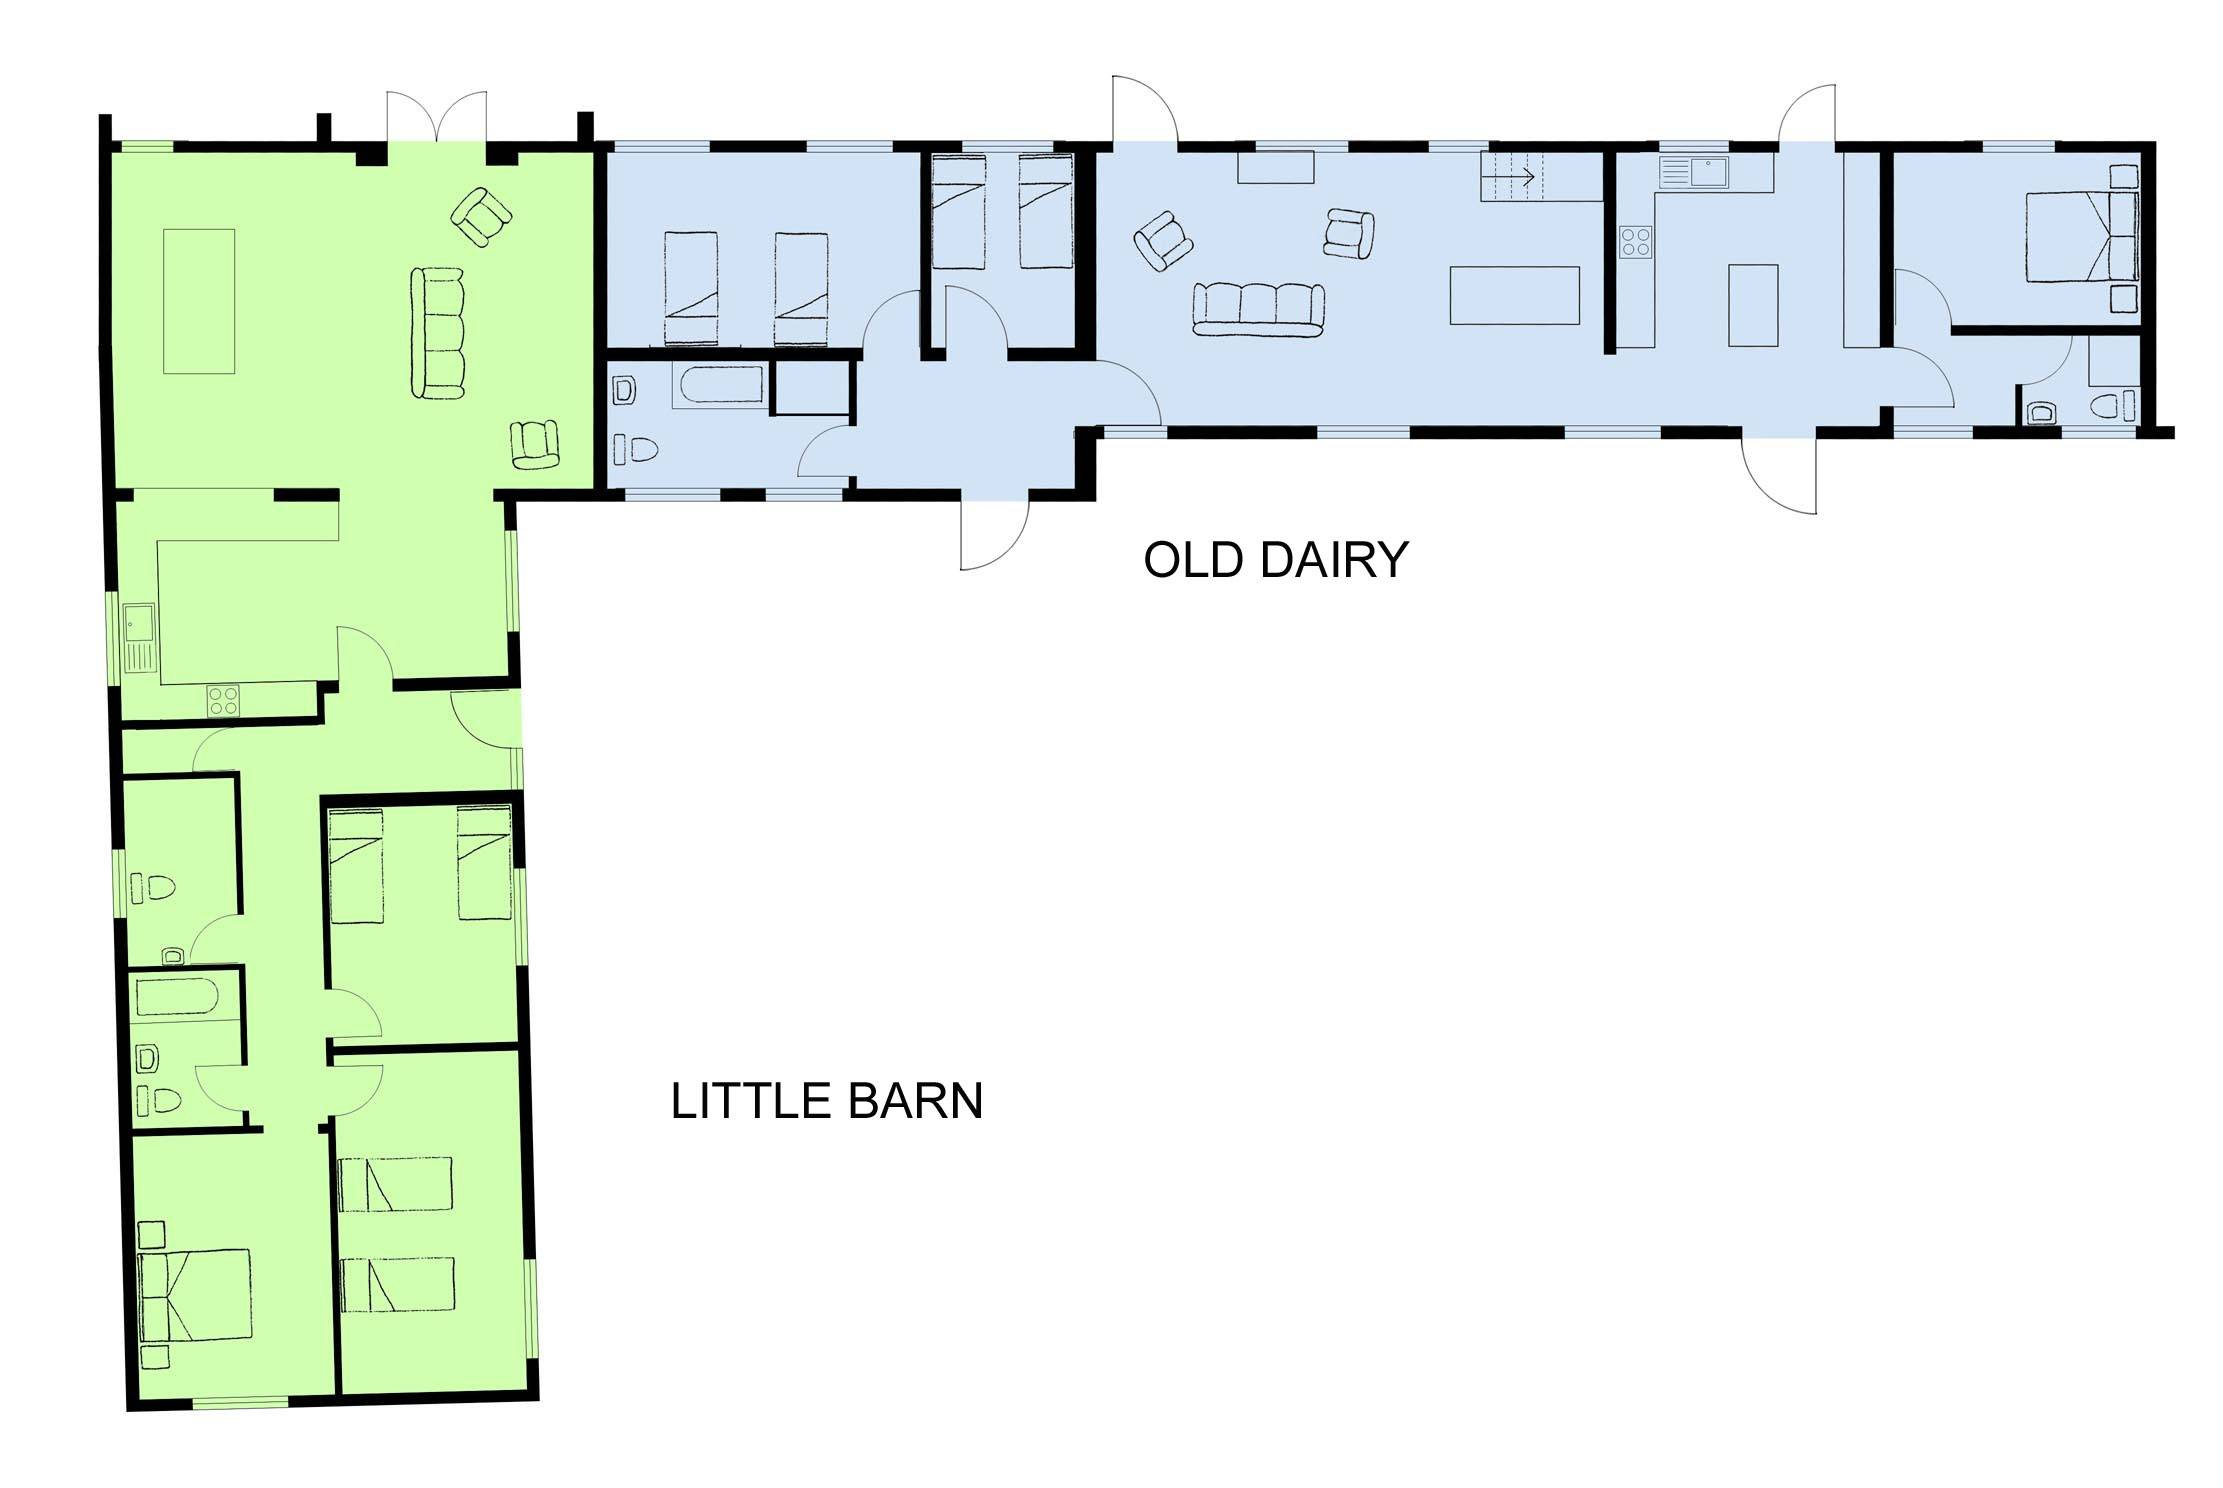 Cottage Old Dairy Little Barn Floor Plans Contact Map